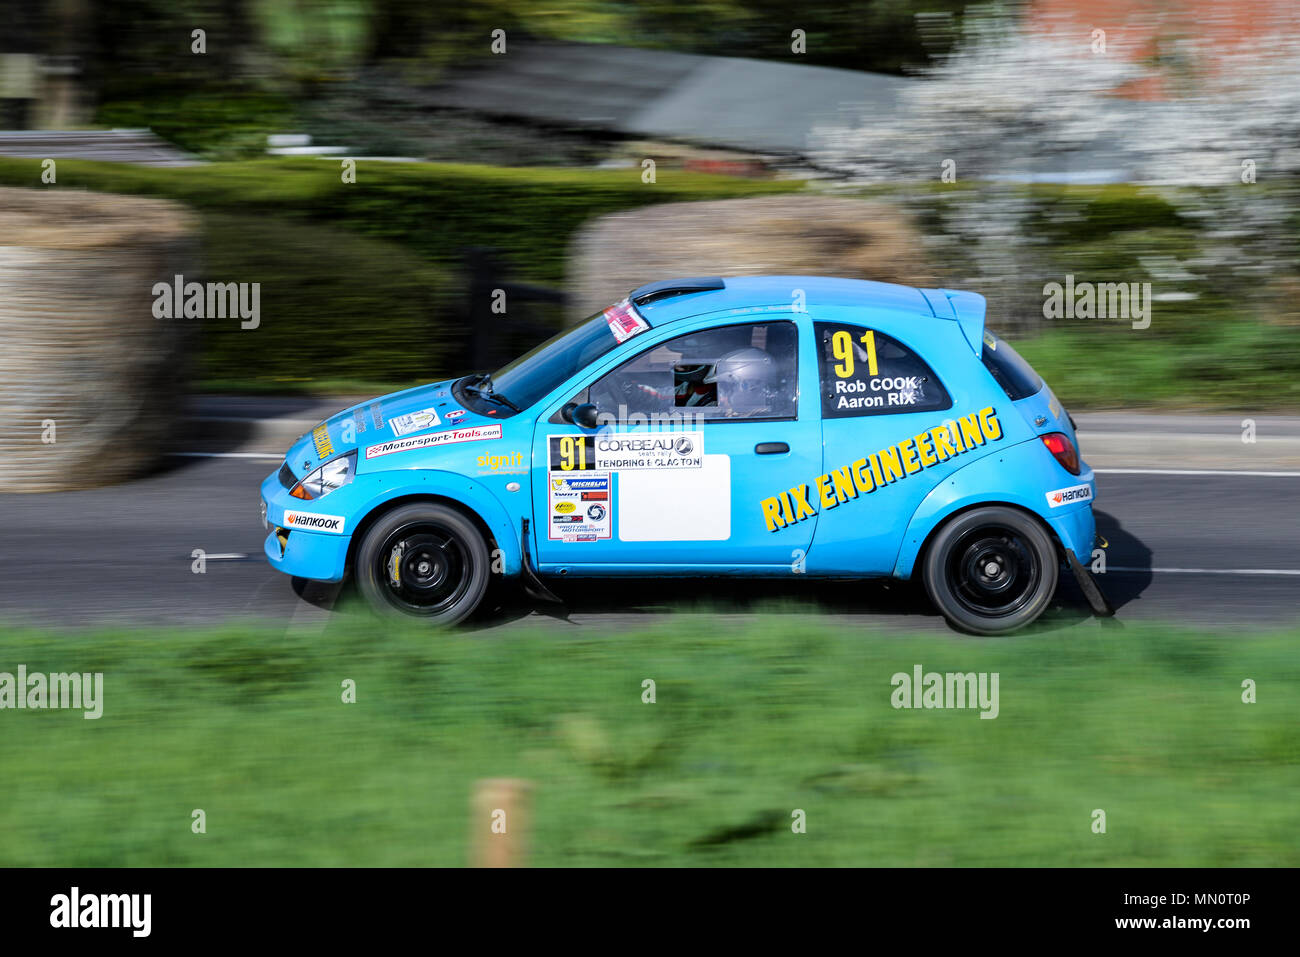 Aaron Rix Driver Rob Cook Co Driver Racing Ford Ka In The Closed Public Road Corbeau Seats Car Rally Tendring And Clacton Es Uk